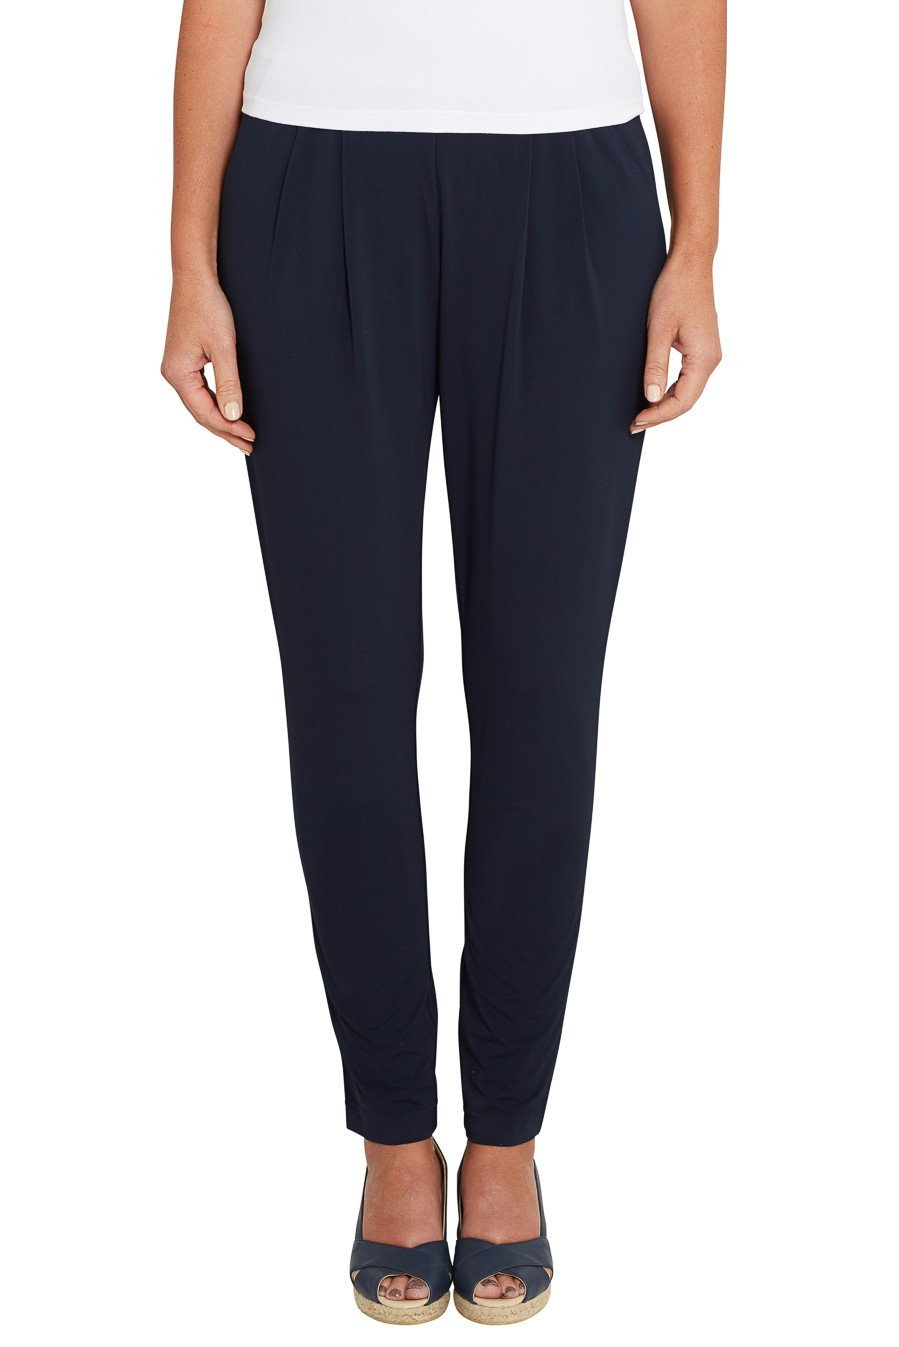 Blue Illusion Travel Pant by Blue Illusion